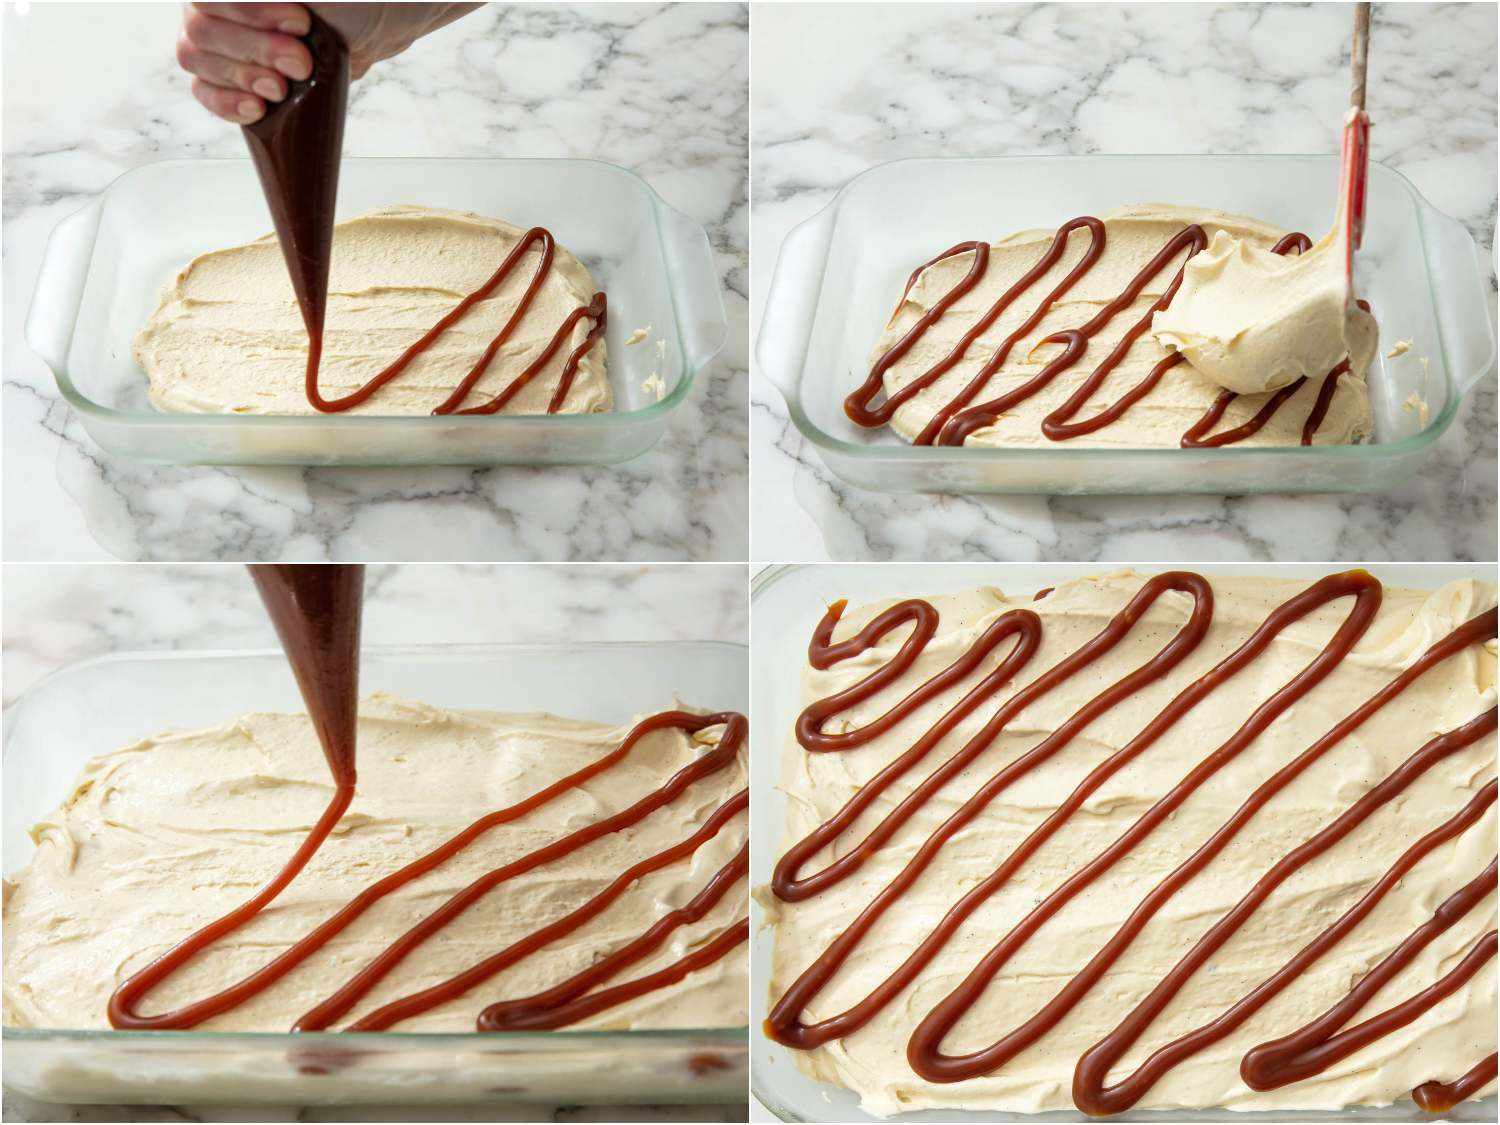 piping a caramel swirl into a dish of freshly churned ice cream